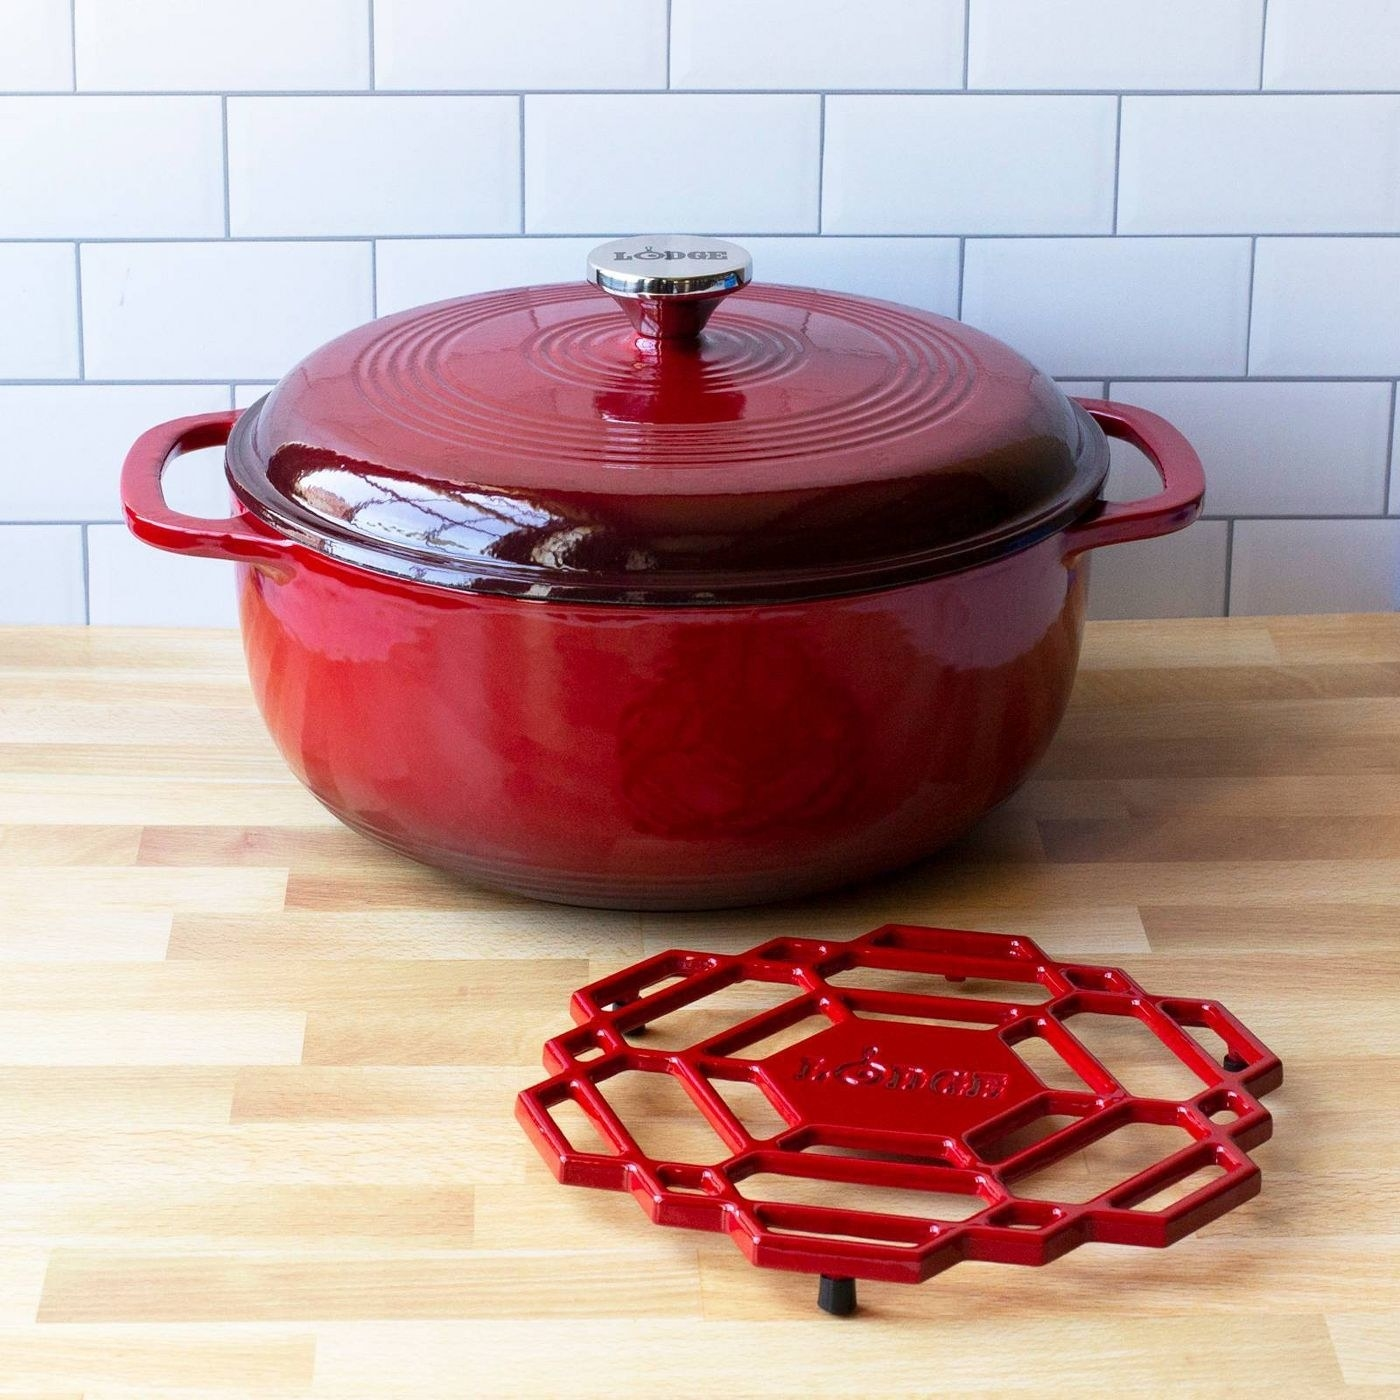 red lodge dutch oven with a matching trivet